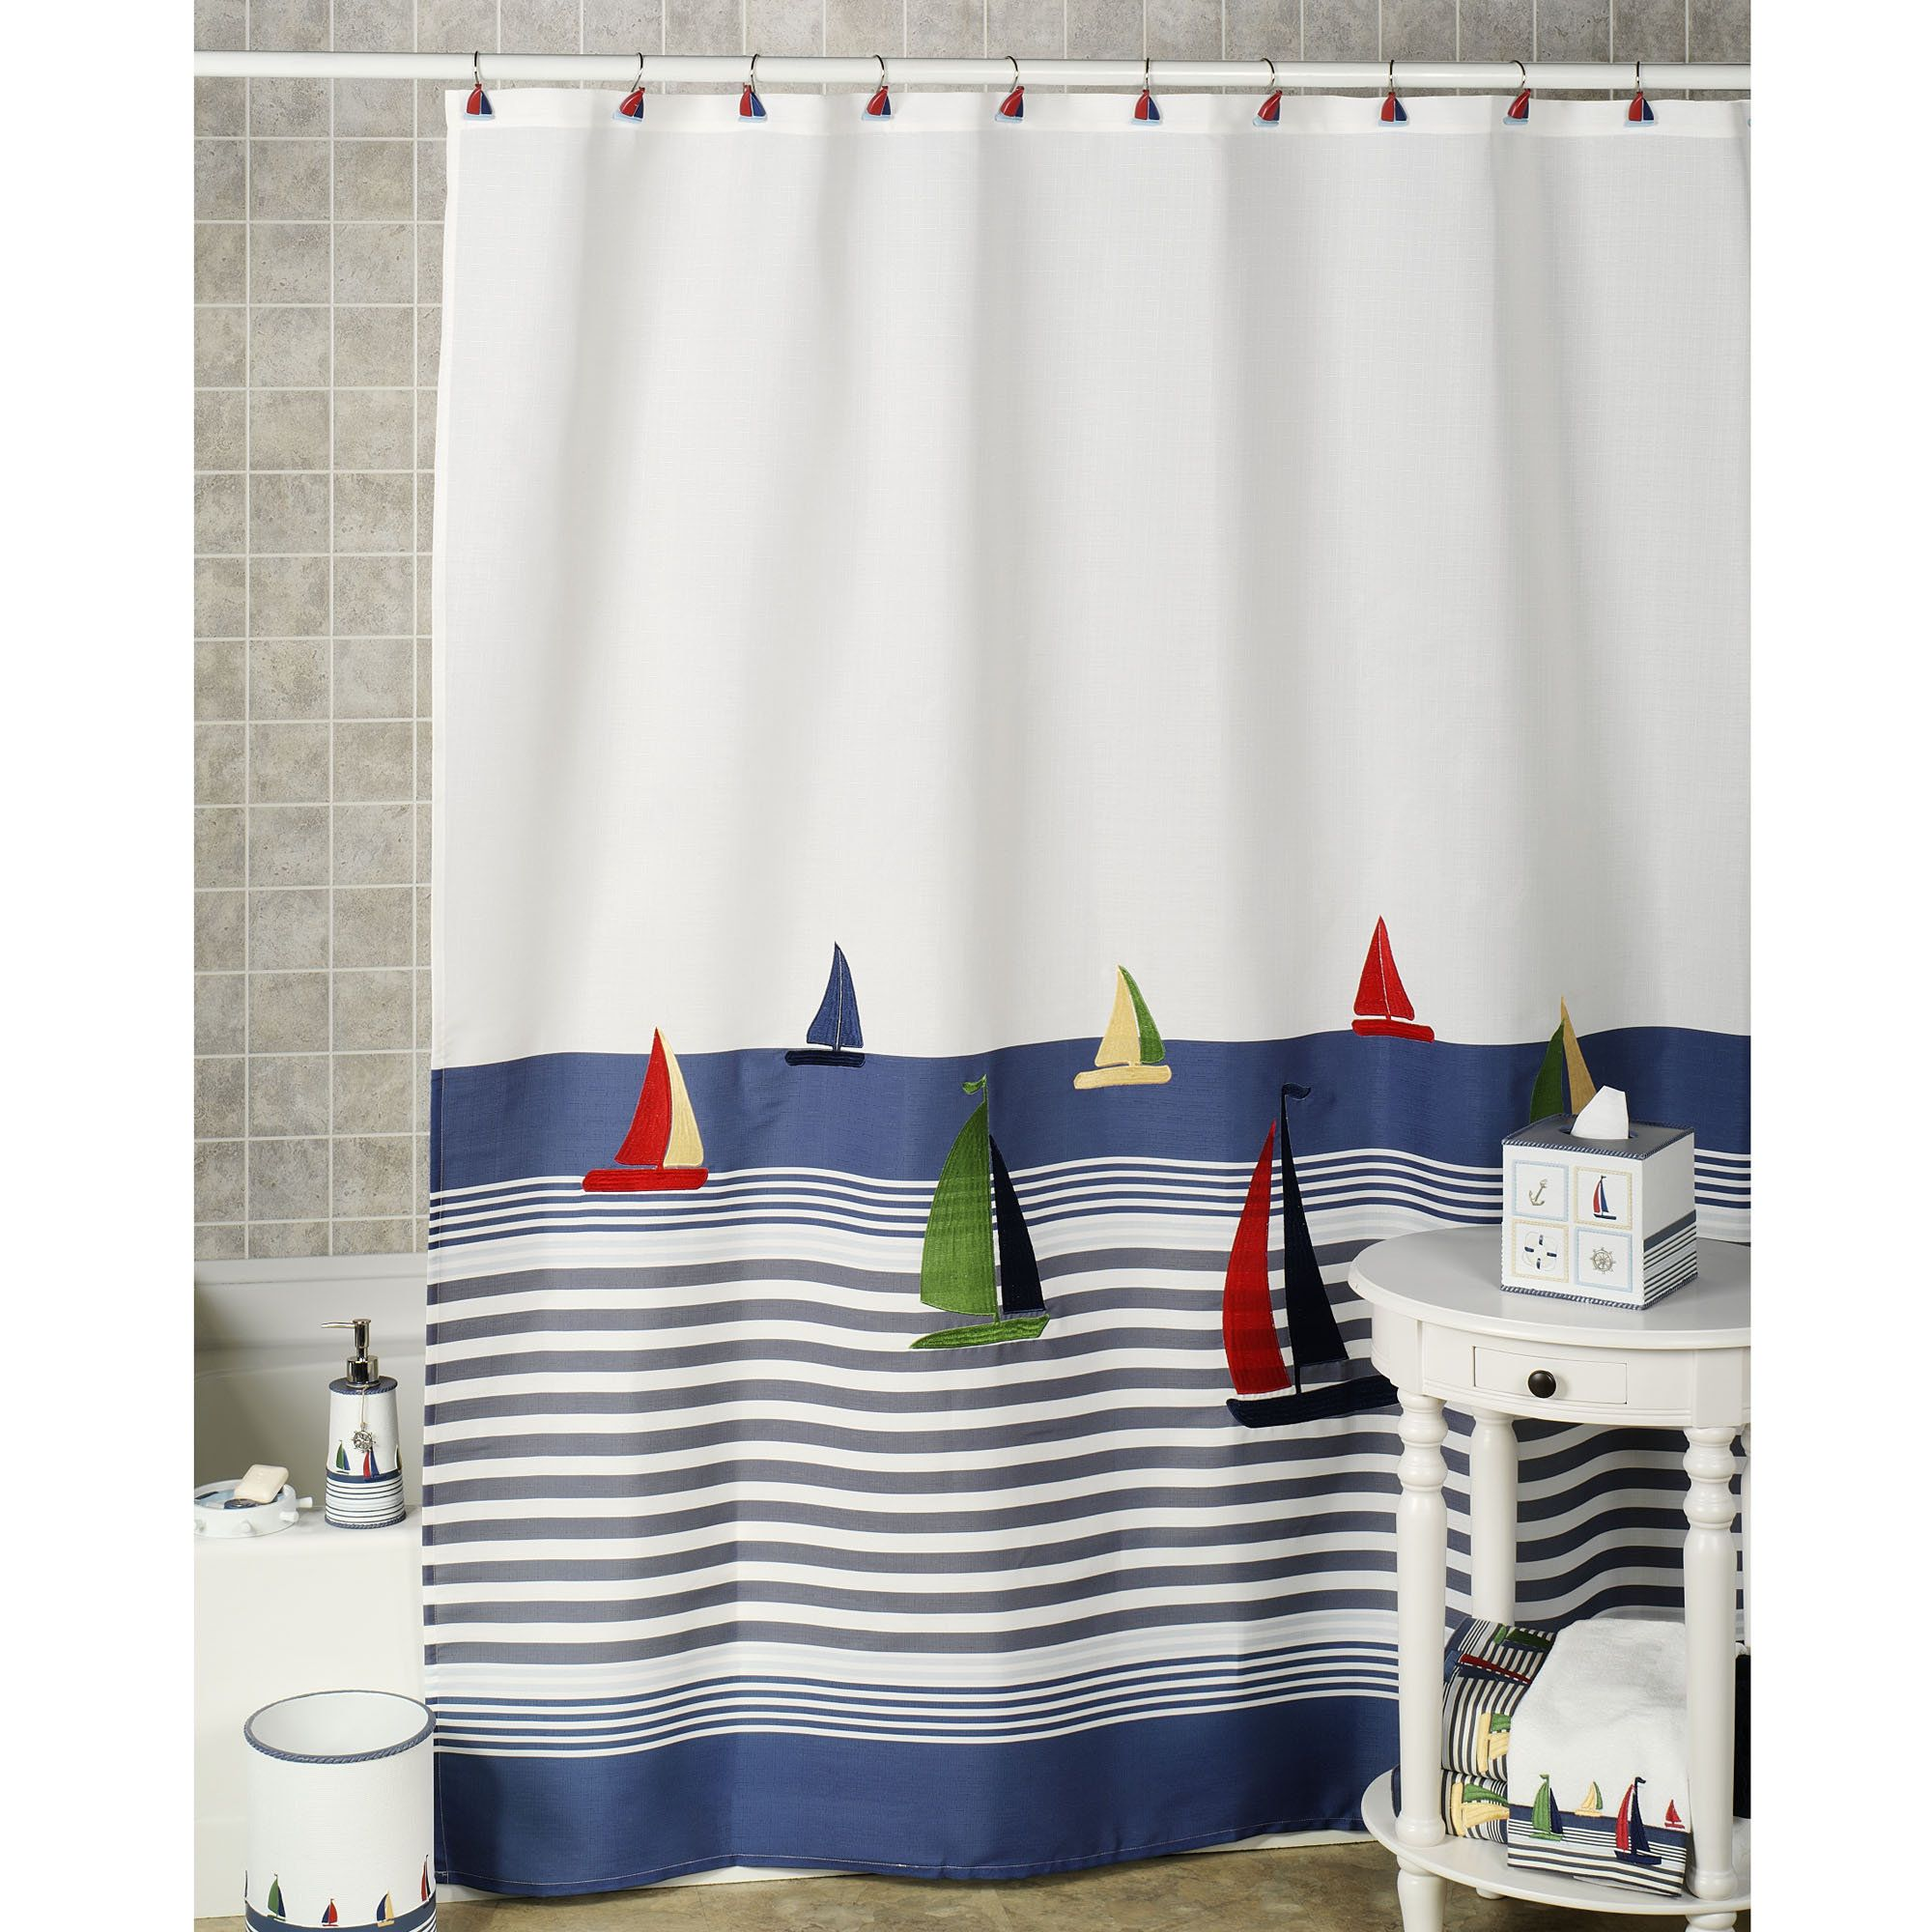 Nautical But Nice Shower Curtain With Sailboats Sailing On A Warm